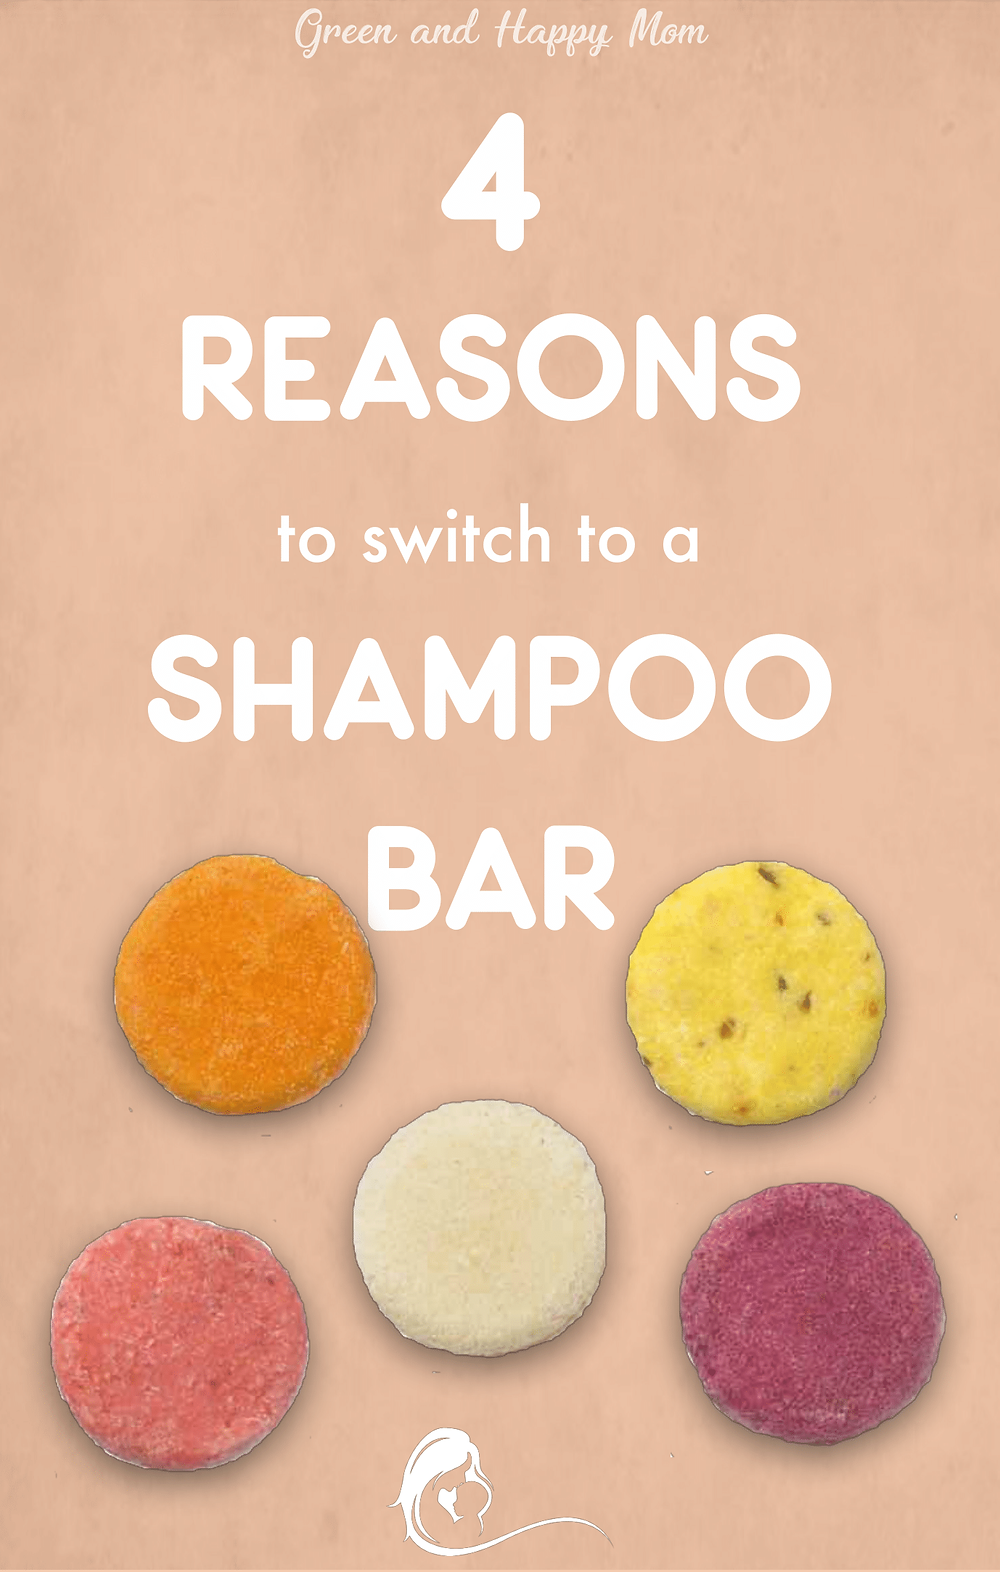 4 Reasons Why to use Shampoo Bars